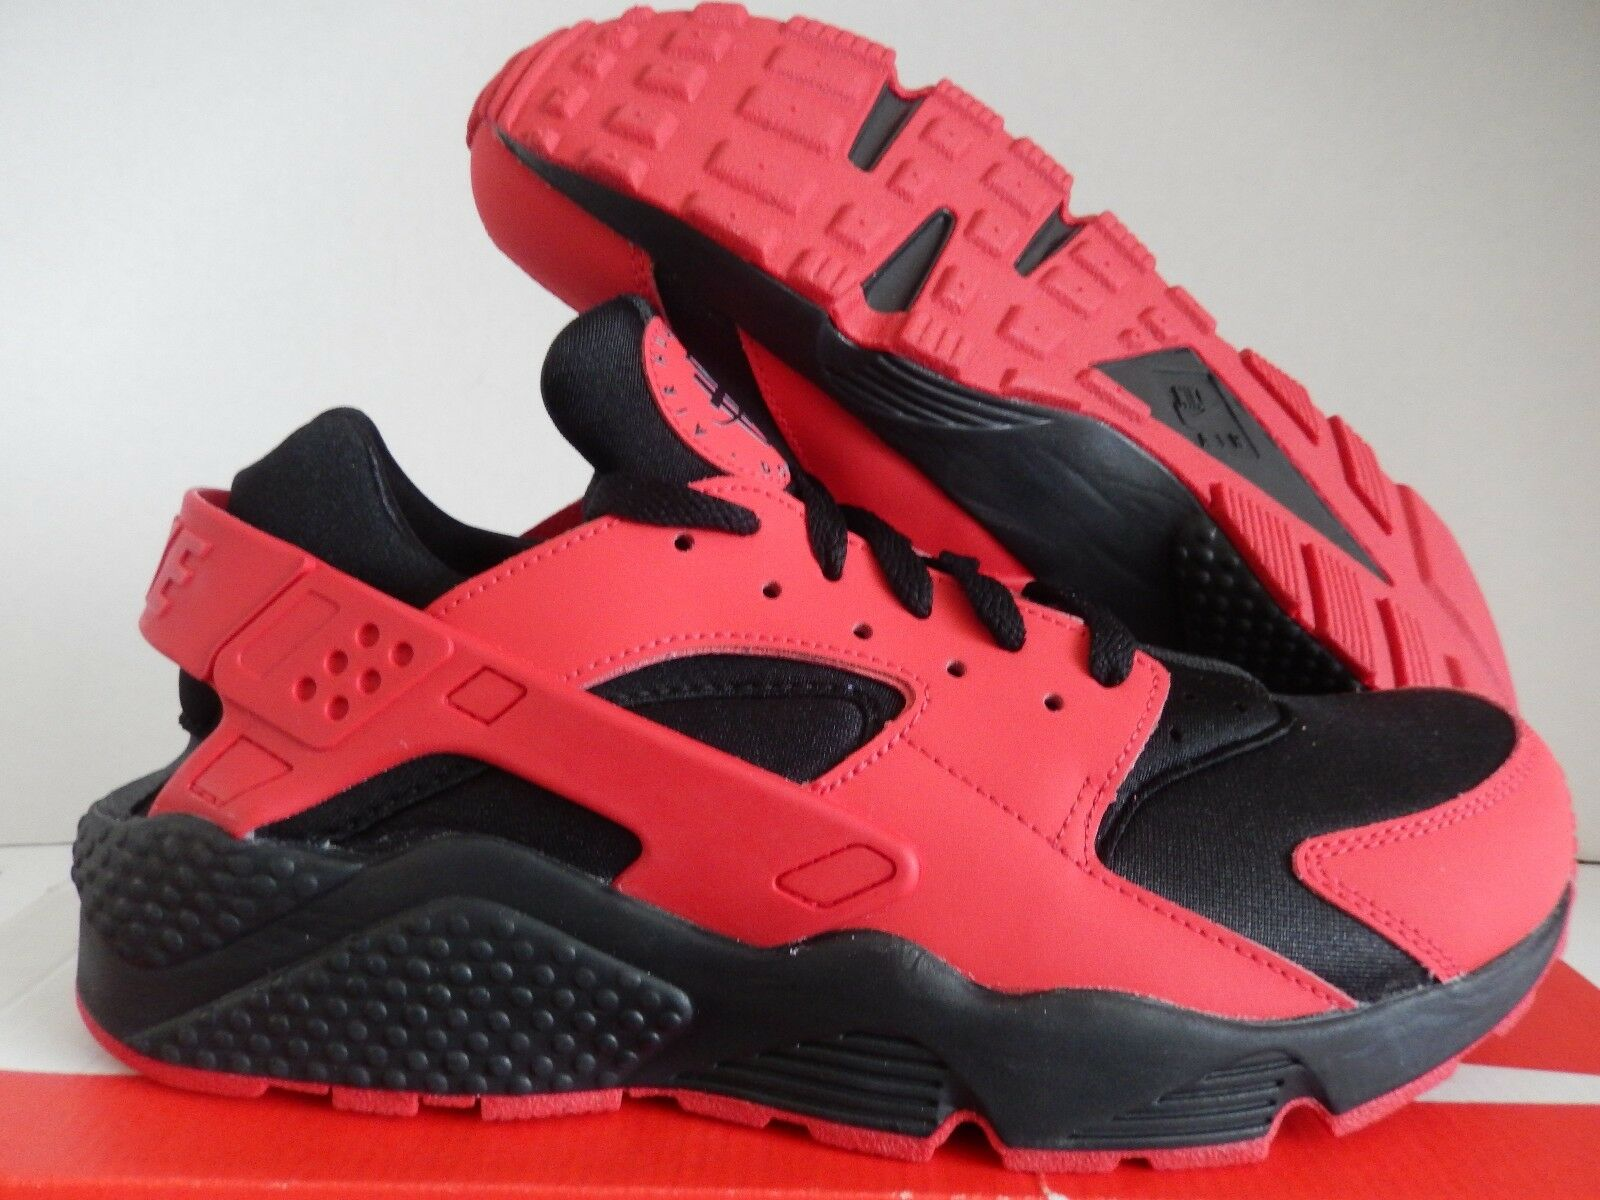 NIKE AIR HUARACHE ID RED-BLACK SZ 10 [777330-978]